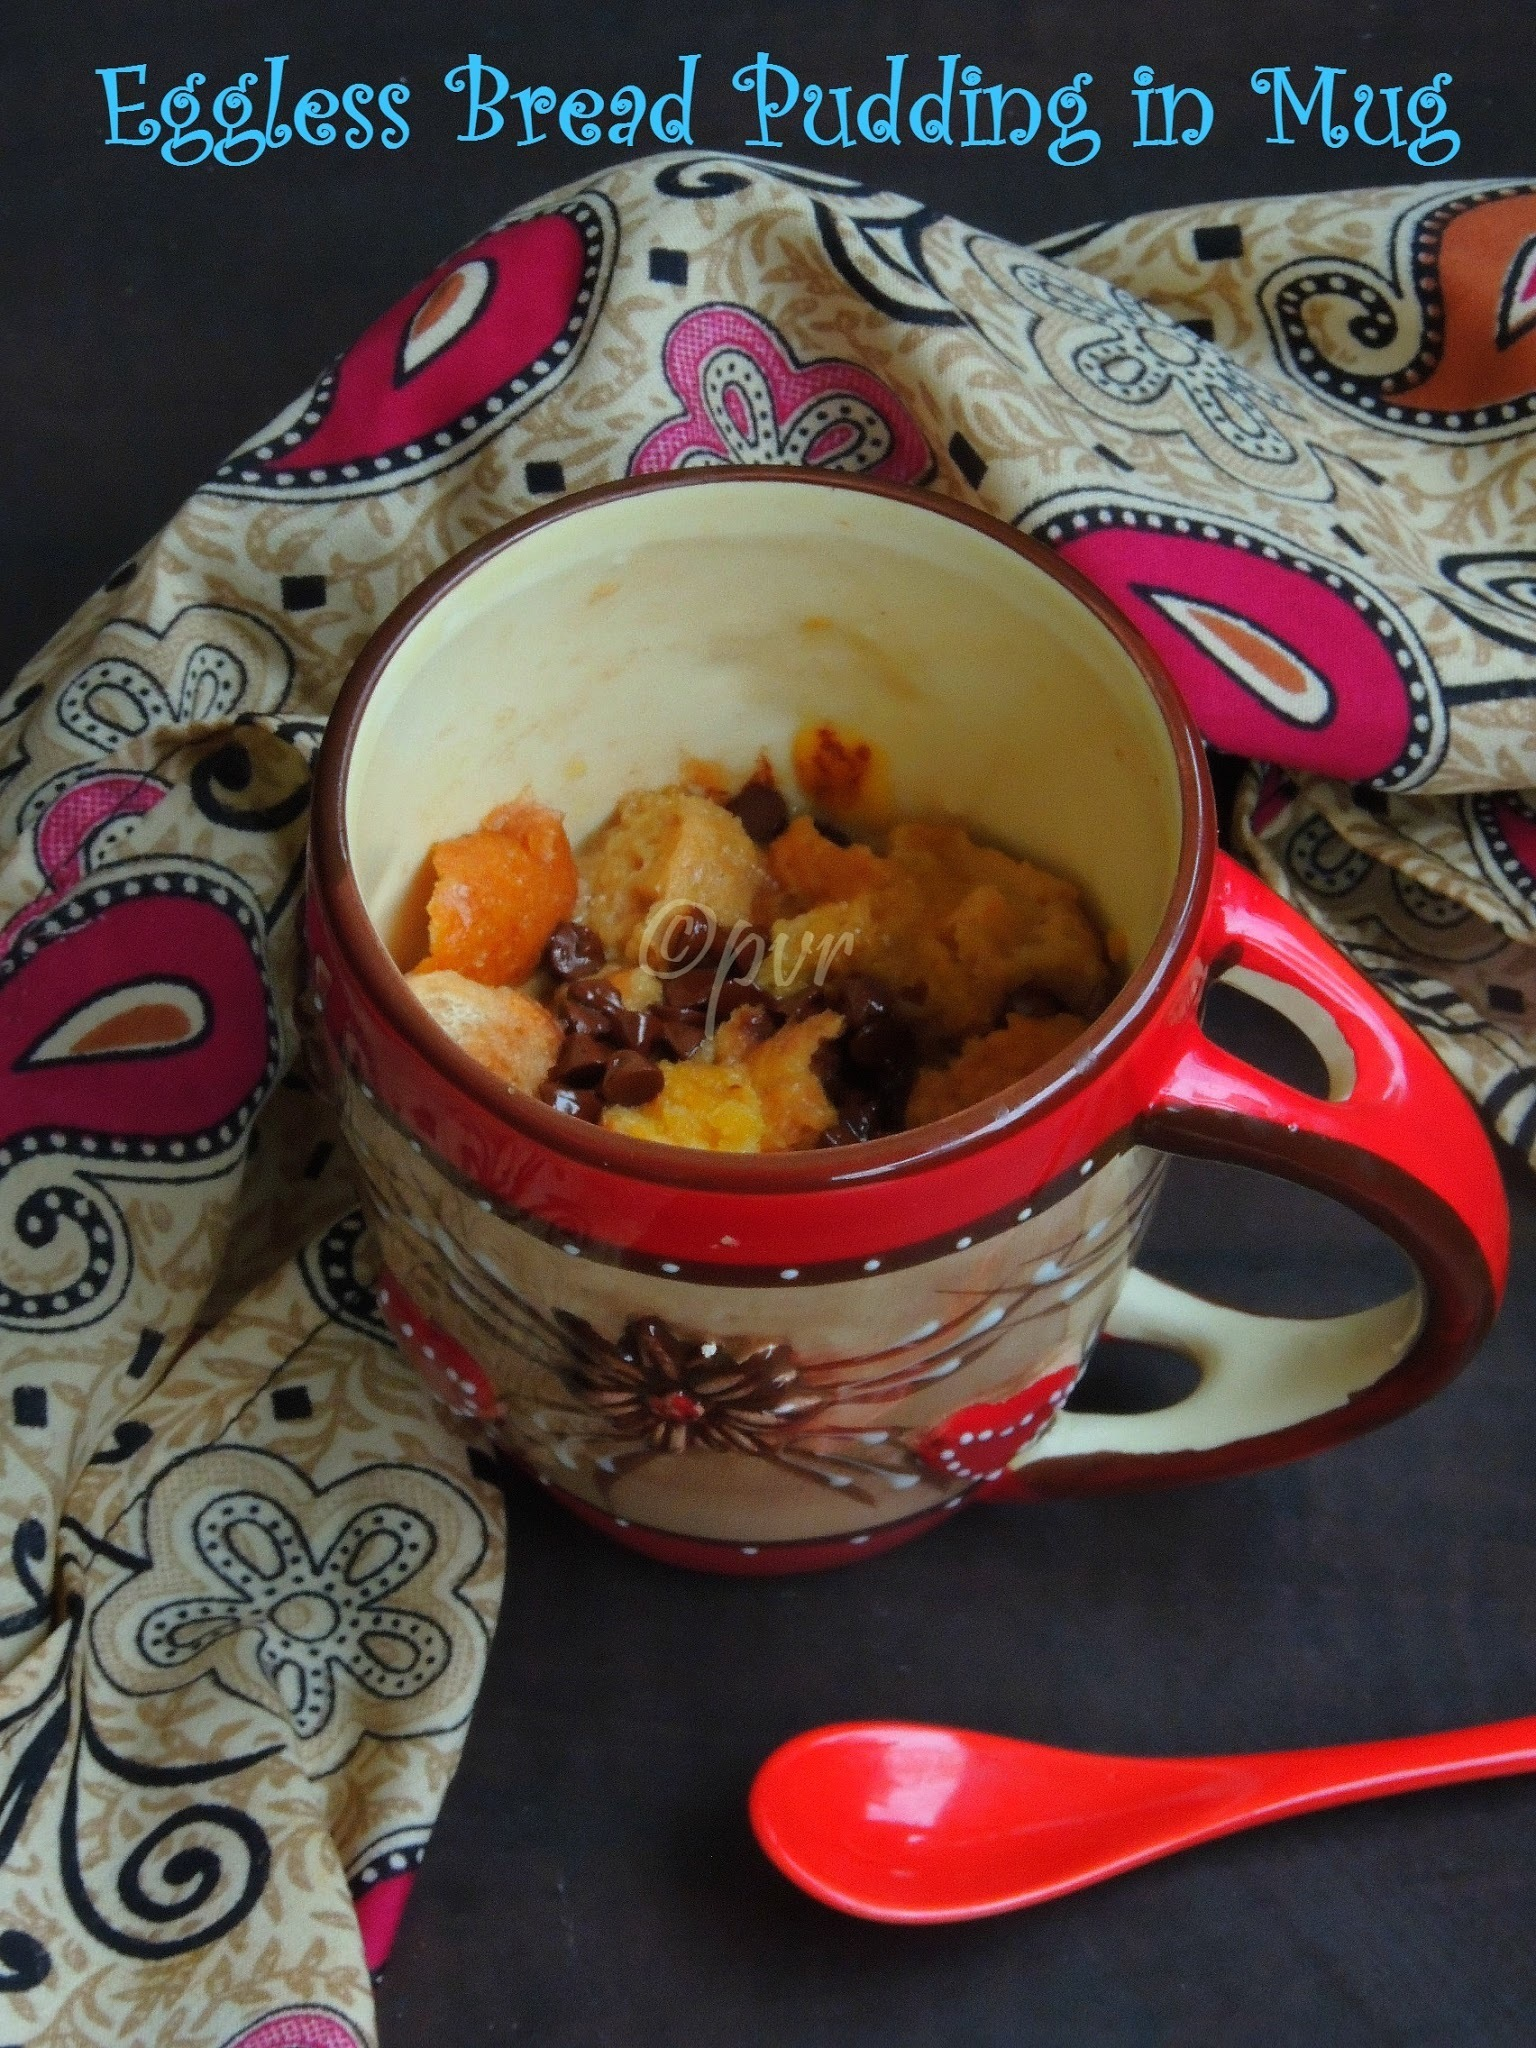 Eggless Bread Pudding In Mug